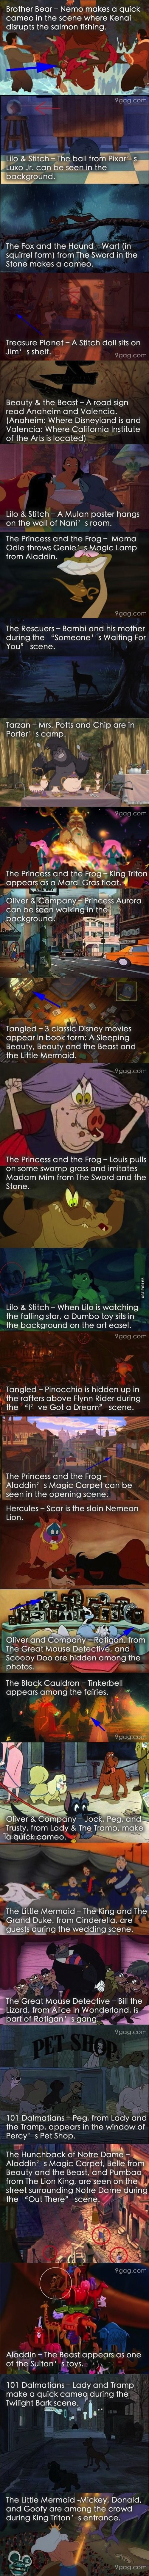 Hidden gems in Disney movies. These are actually good ones I haven't seen before